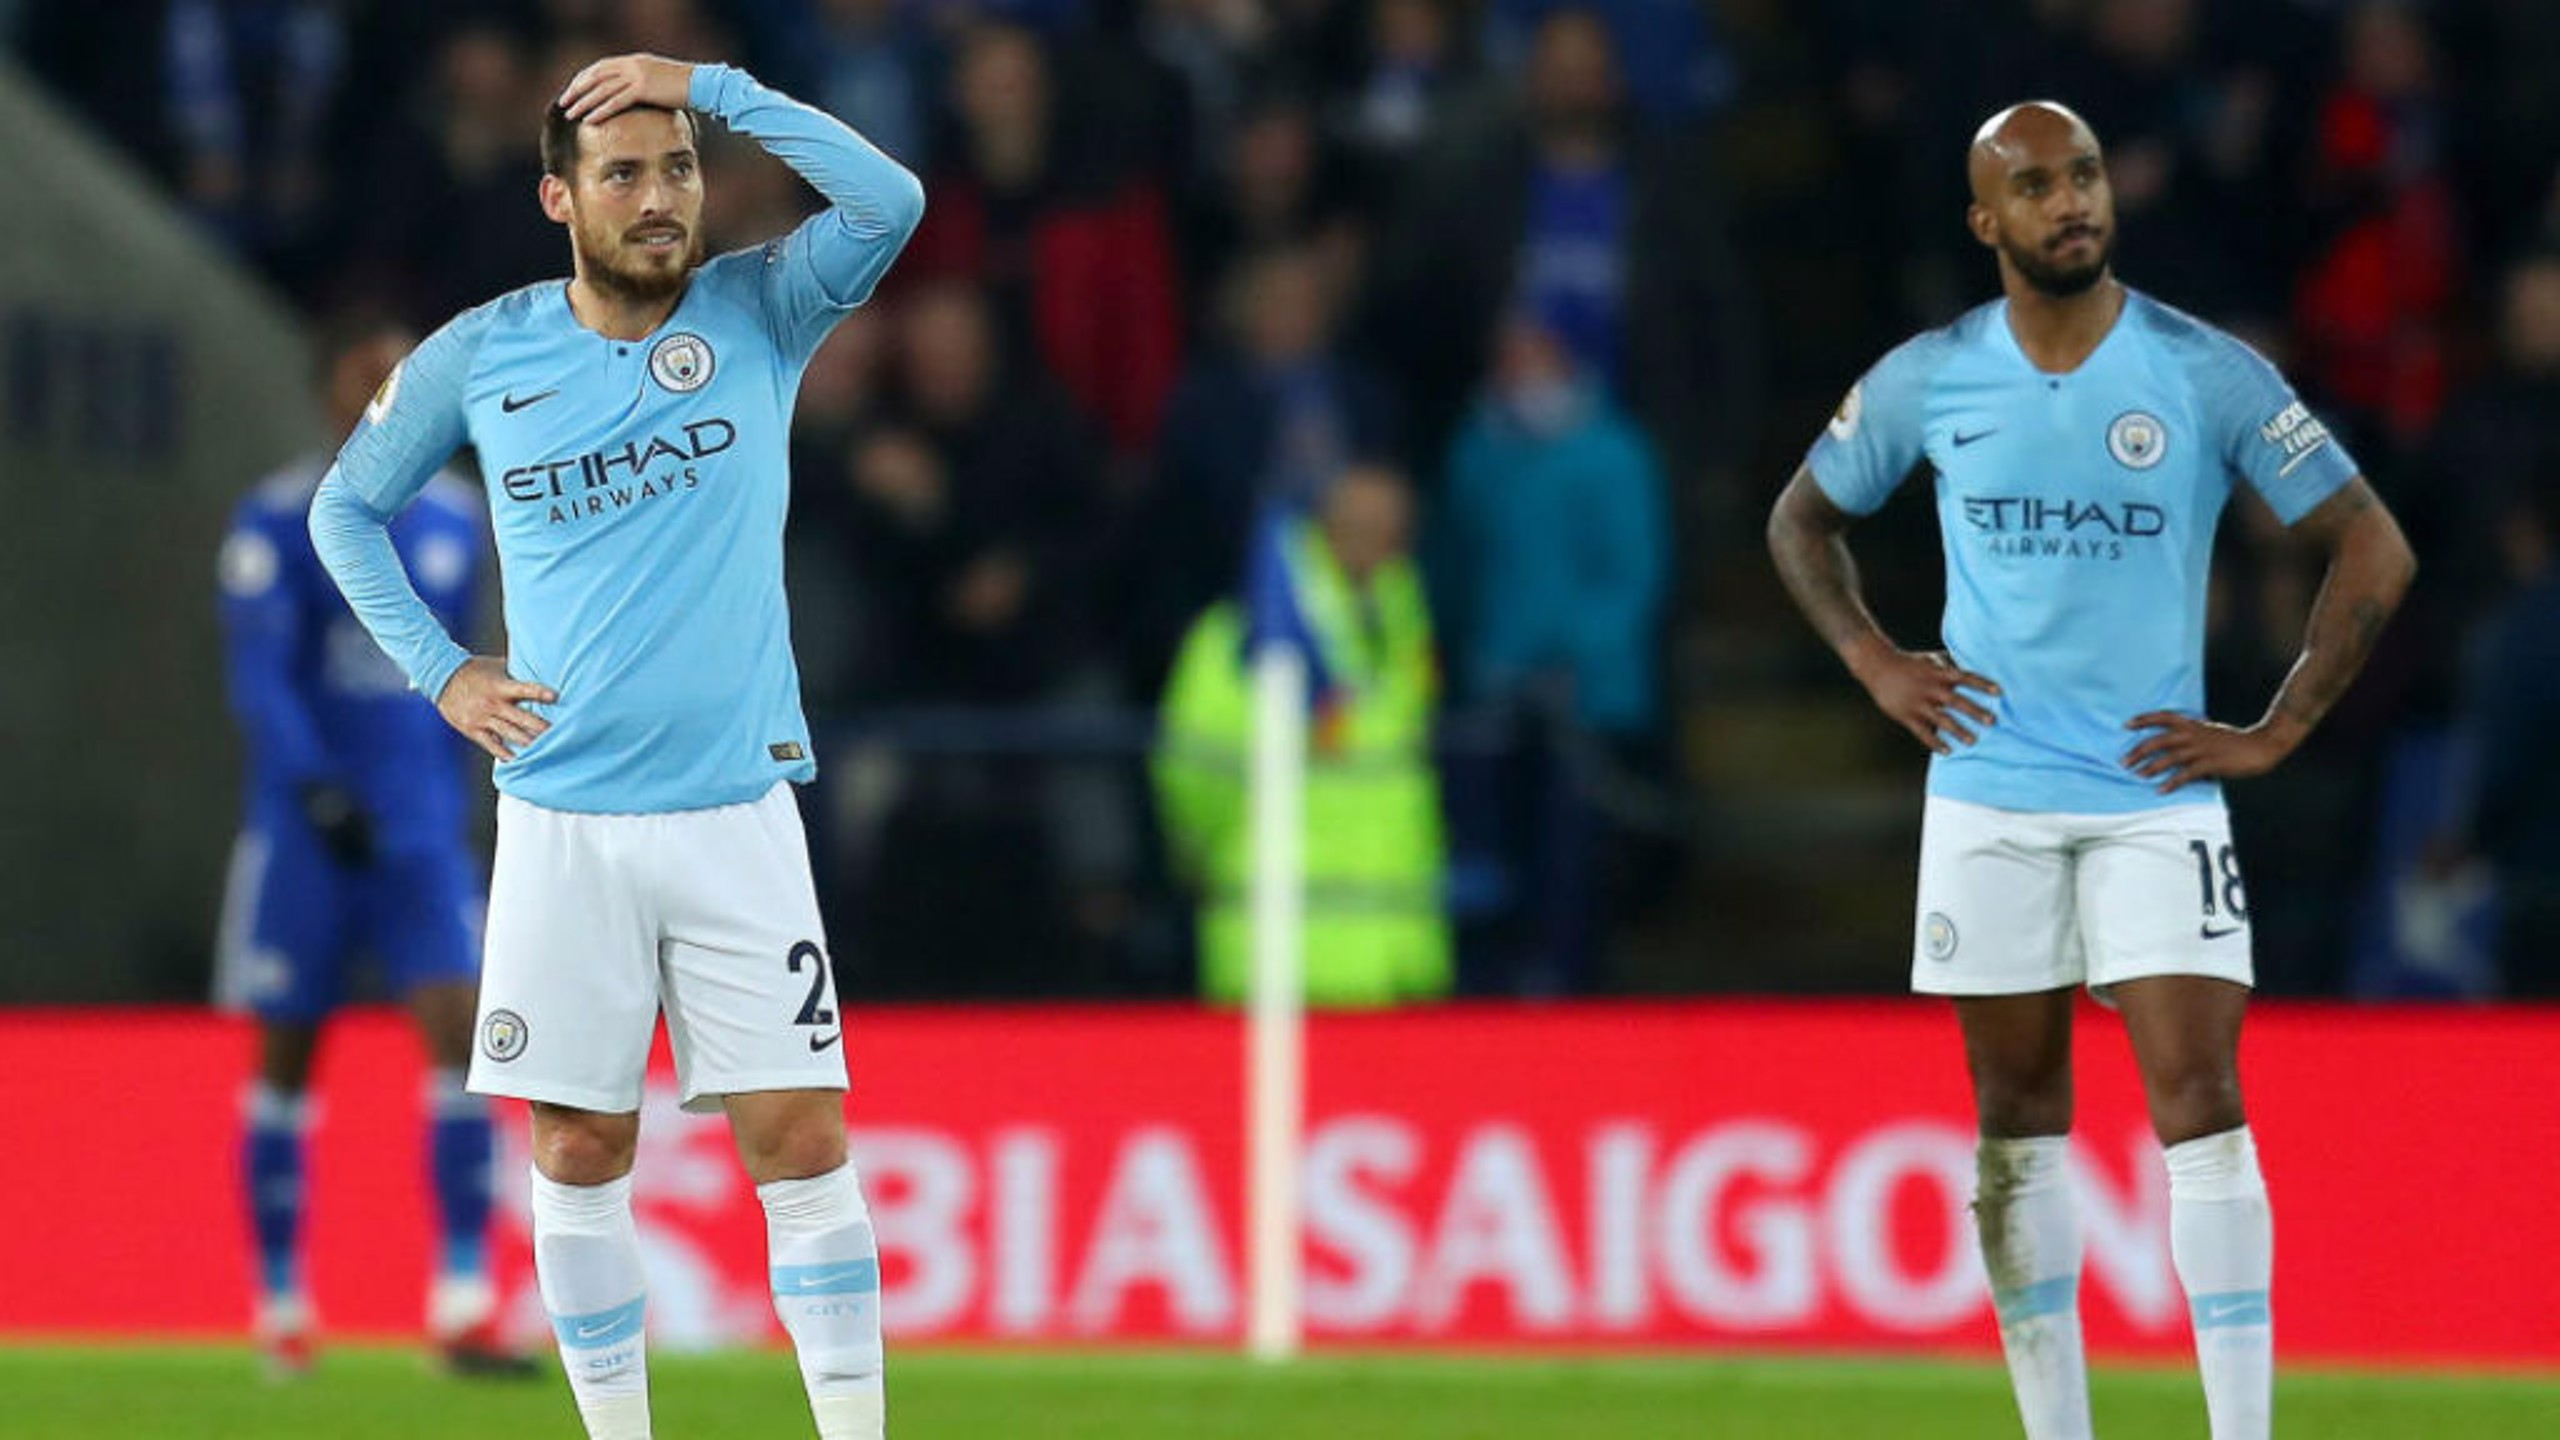 BOXING DAY BLUES: The expressions on the faces of David Silva and Fabian Delph sum up the day